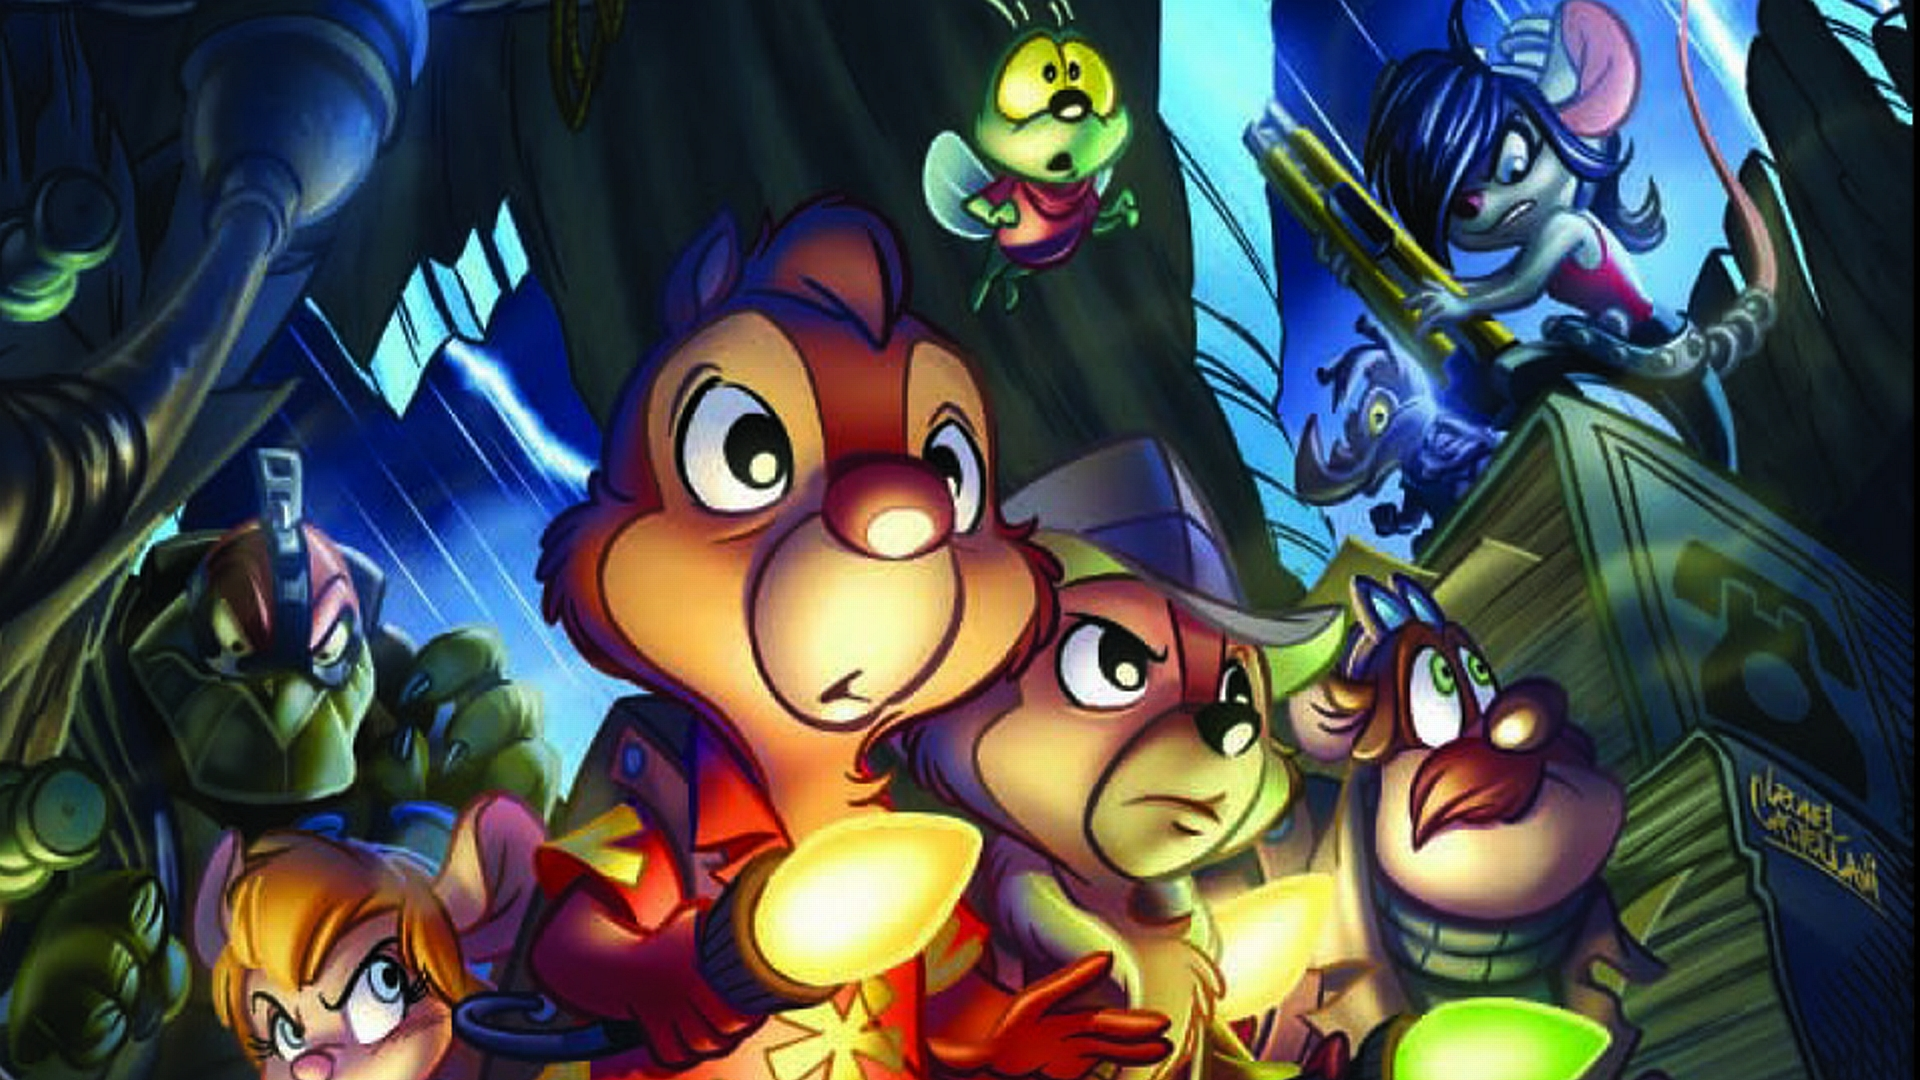 Rescue rangers full hd wallpaper and background image - Chip n dale wallpapers free download ...